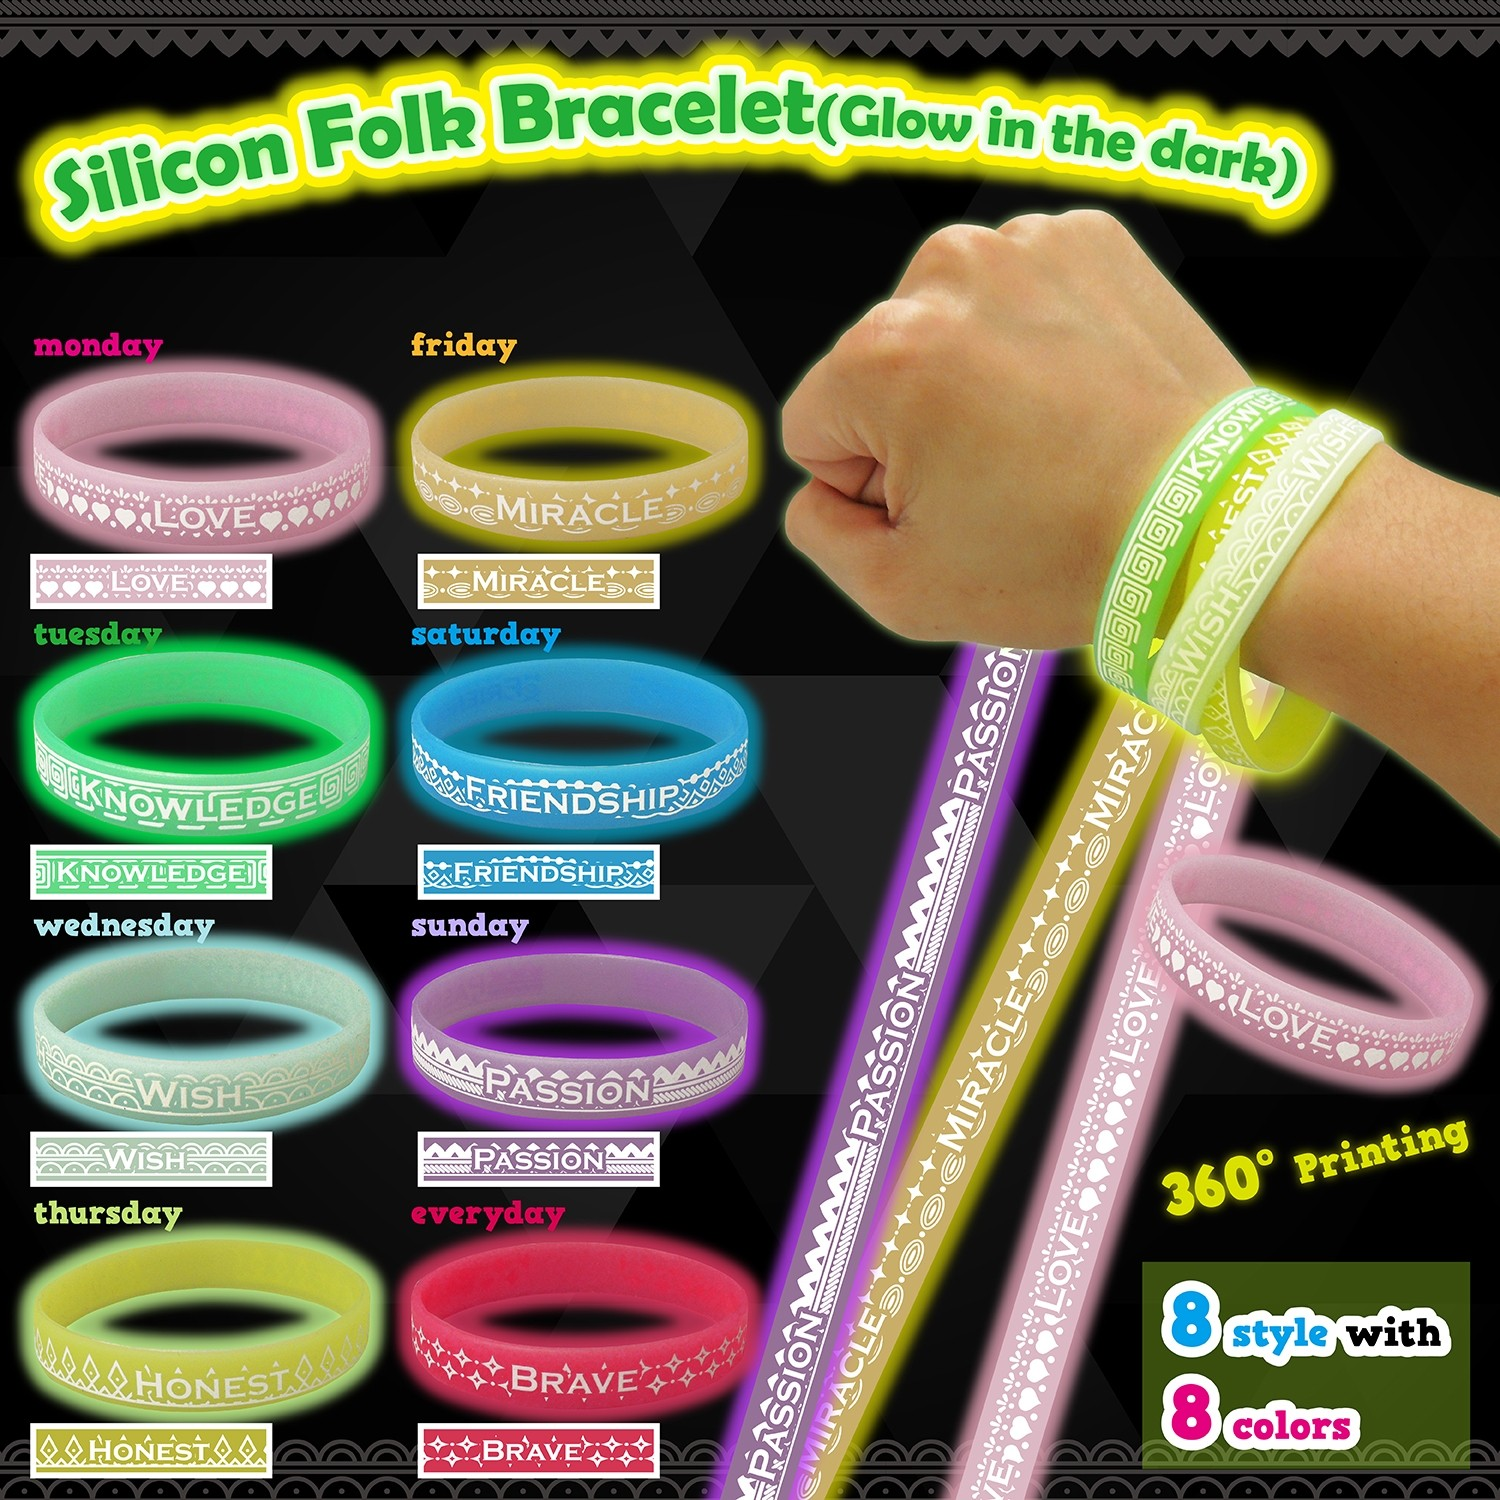 Silicon Folk Bracelet - Glow in the dark